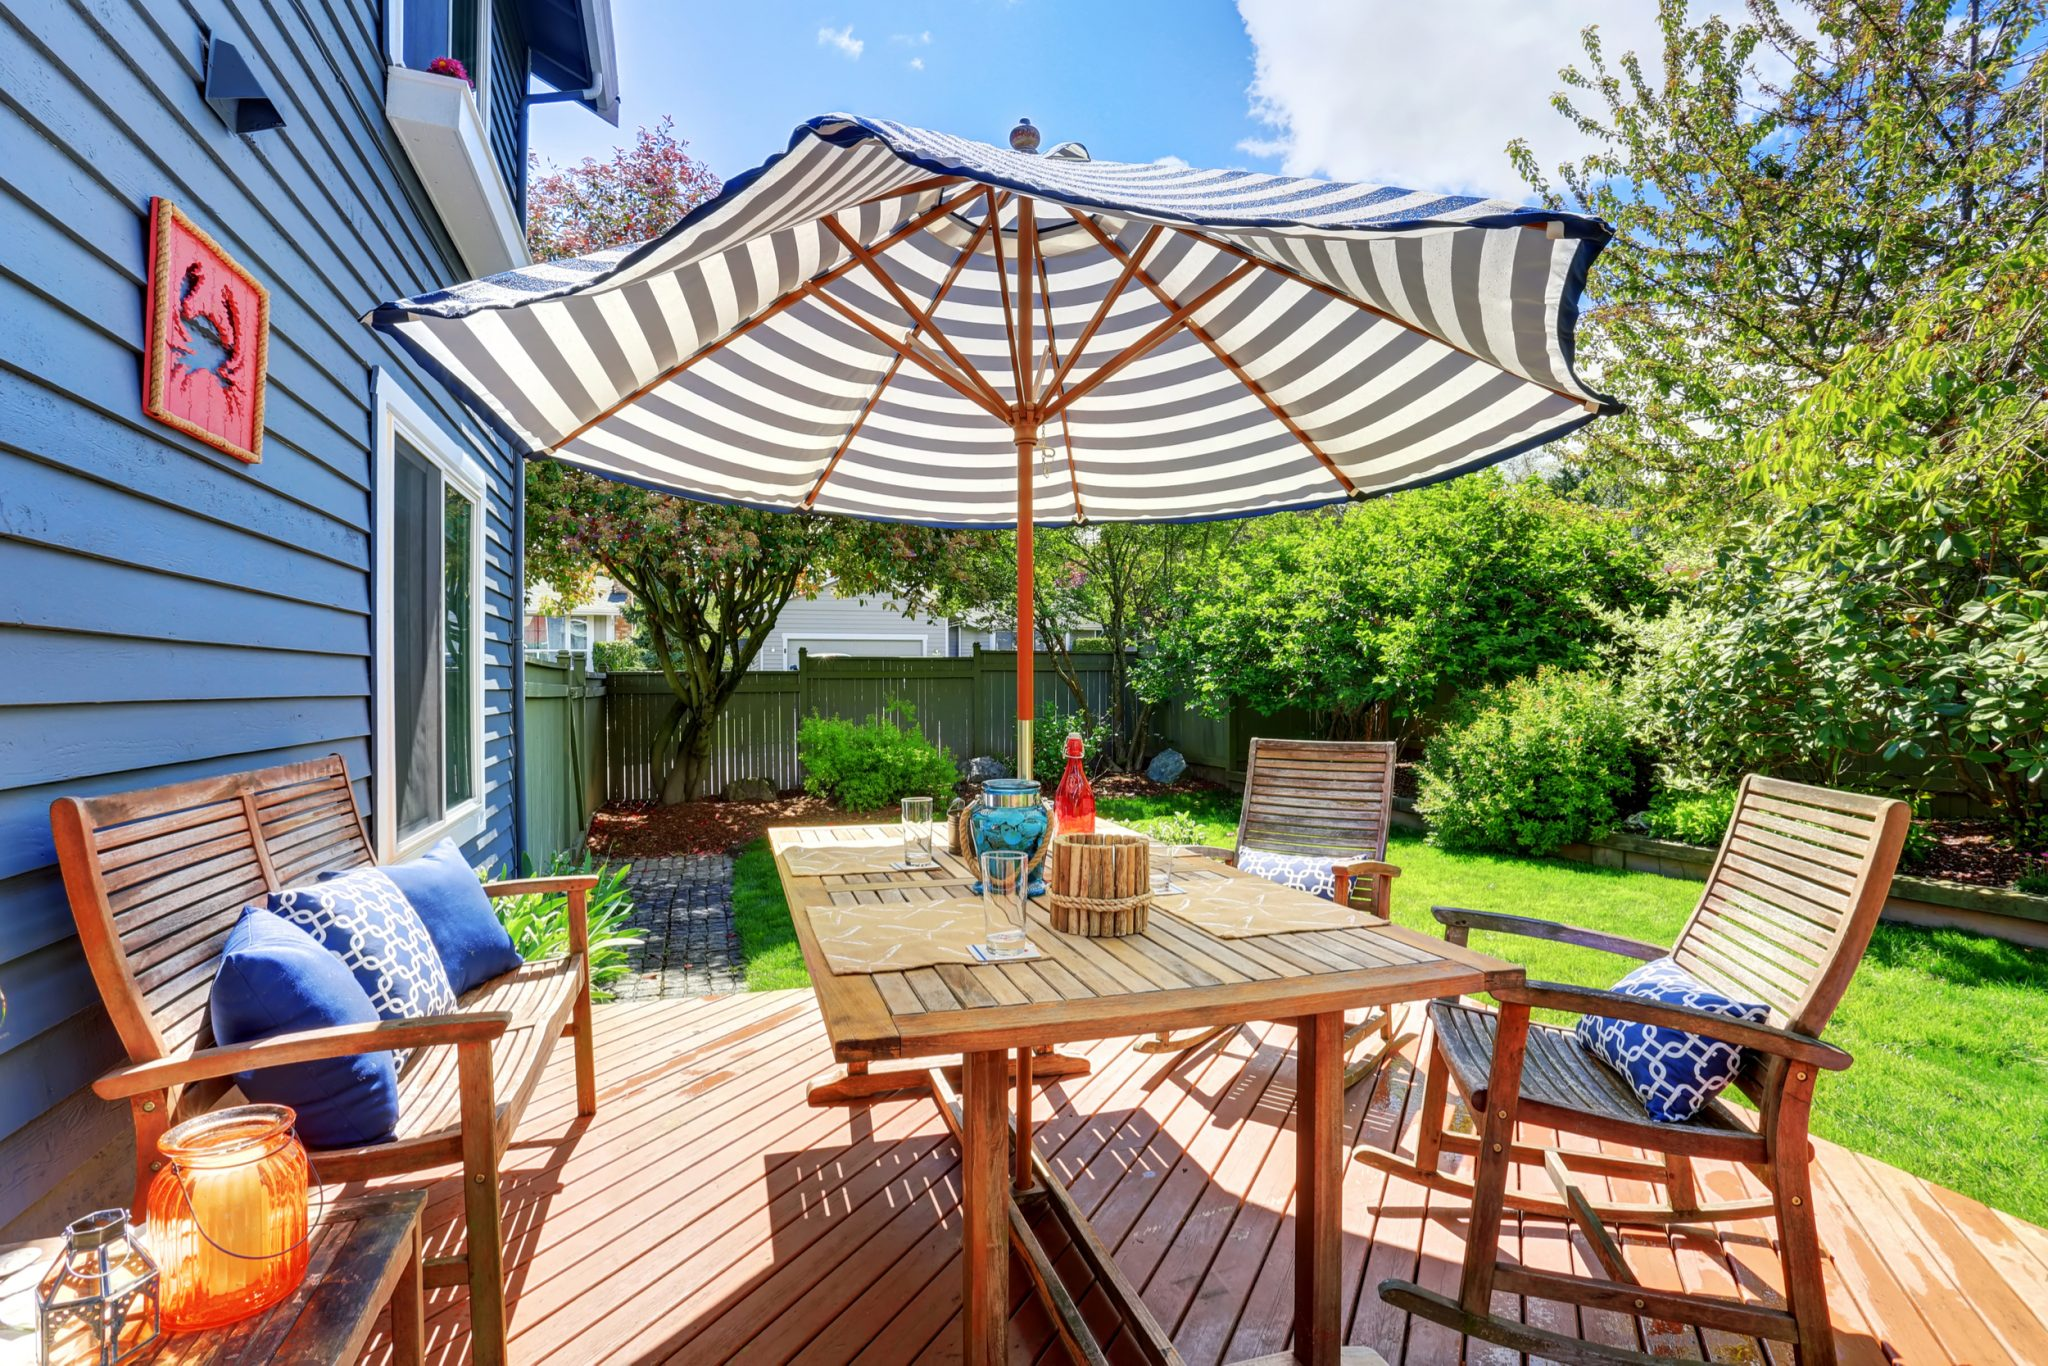 25 Patio Shade Ideas for Your Backyard | INSTALL-IT-DIRECT on Patio Designs  id=62880